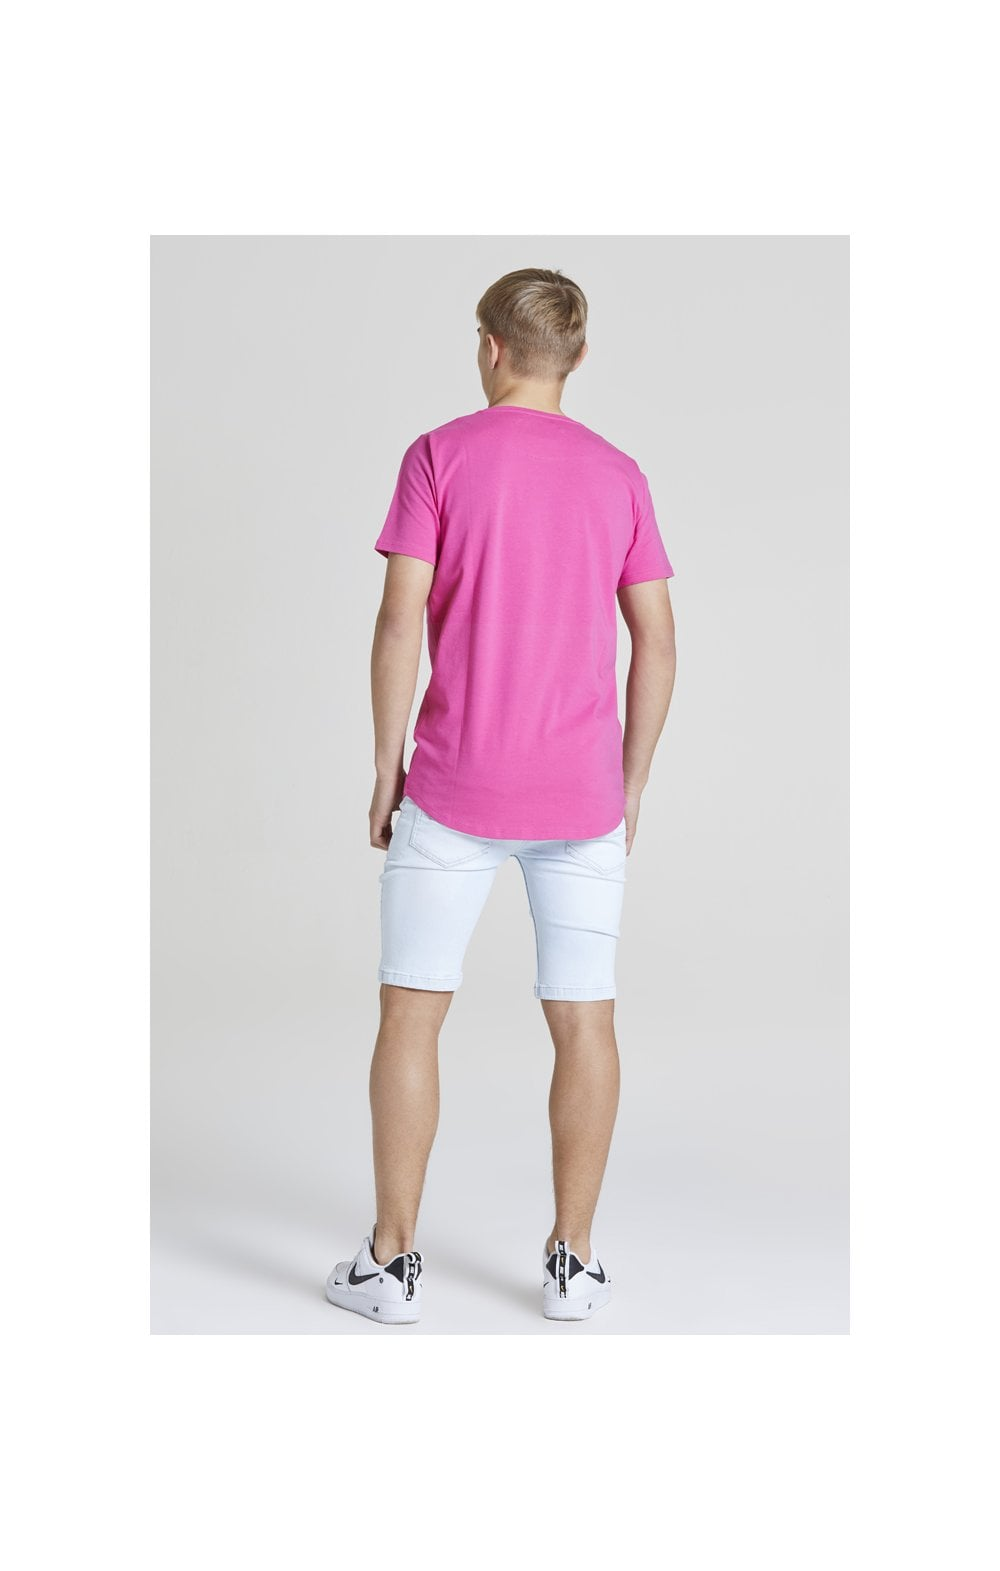 Illusive London Core T-Shirt - Rosa (4)